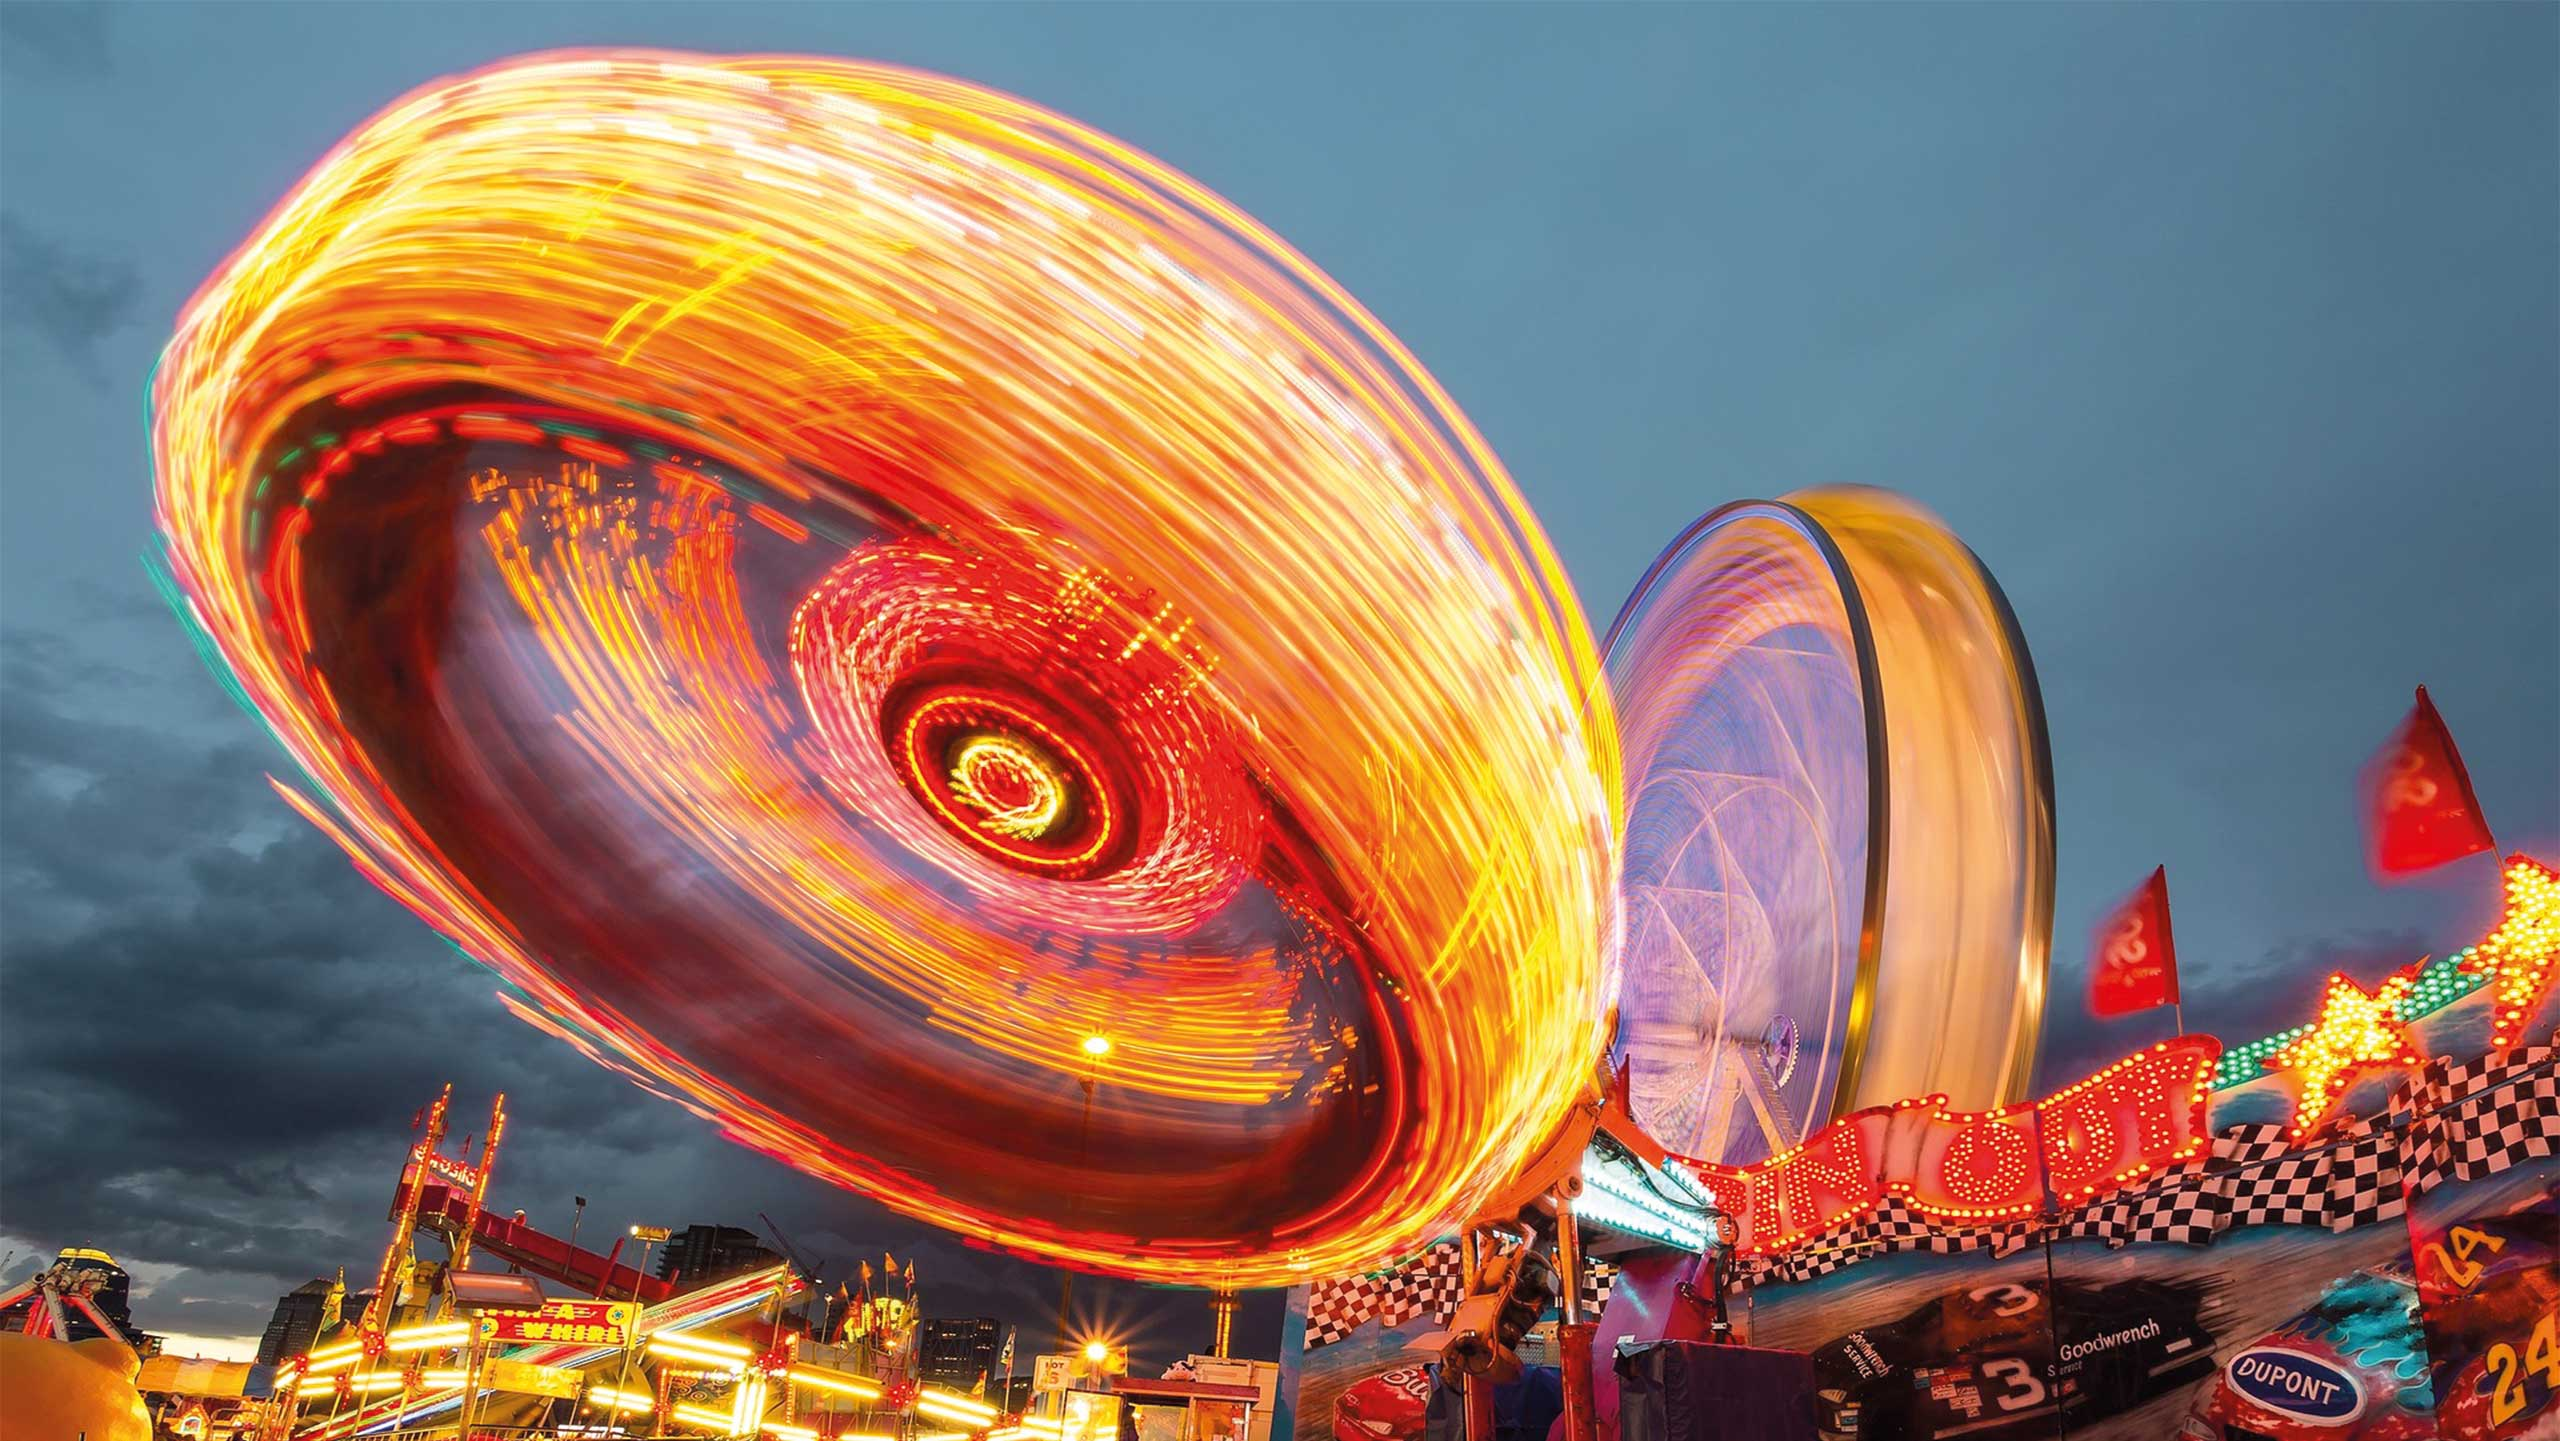 photo of spinning ride during the evening with lights